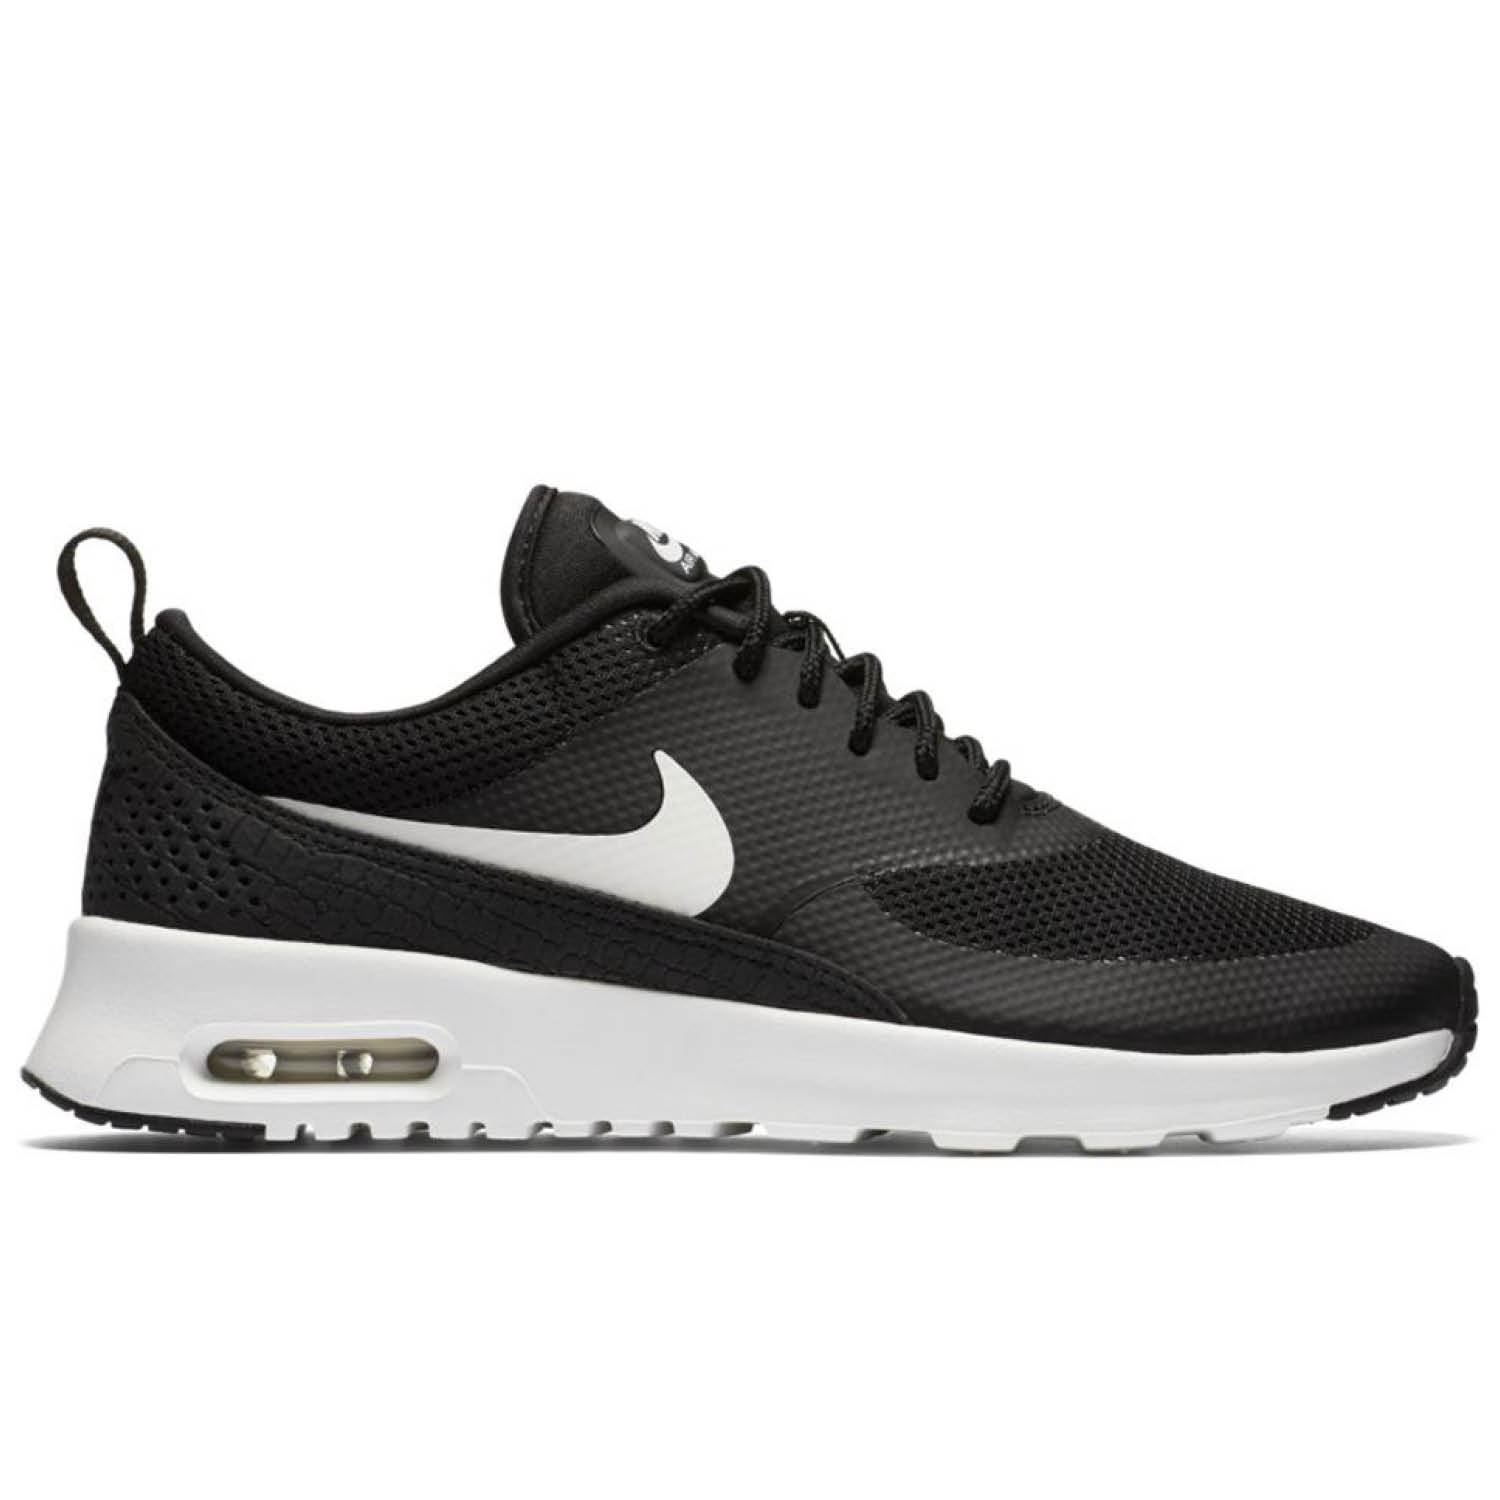 Nike Air Max Thea Black/Summit White 599409 020